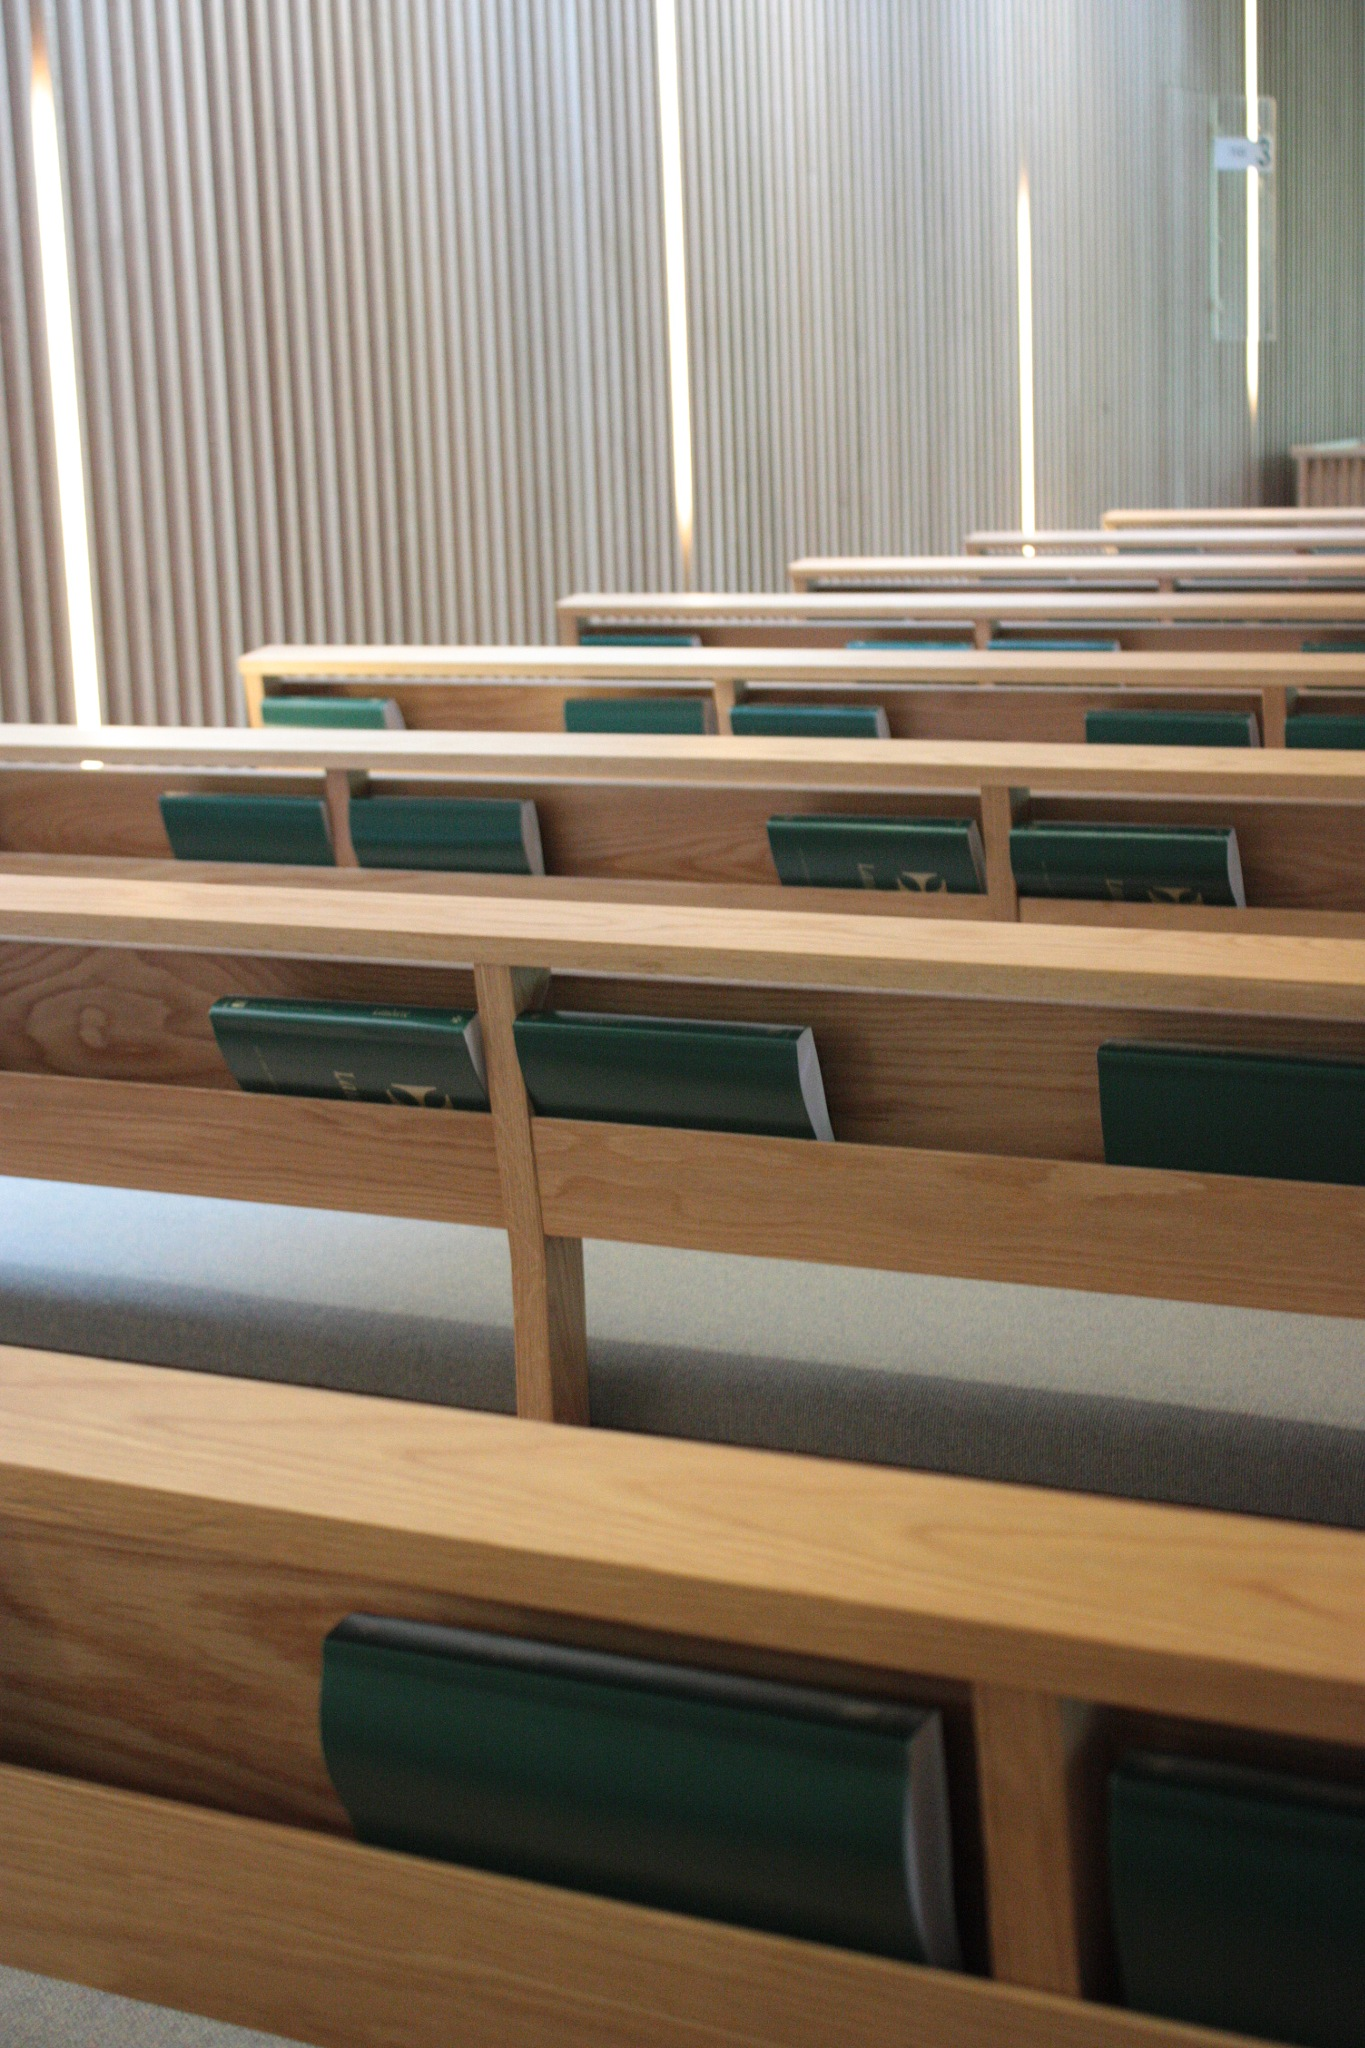 pews and hymn books by stephencdickson